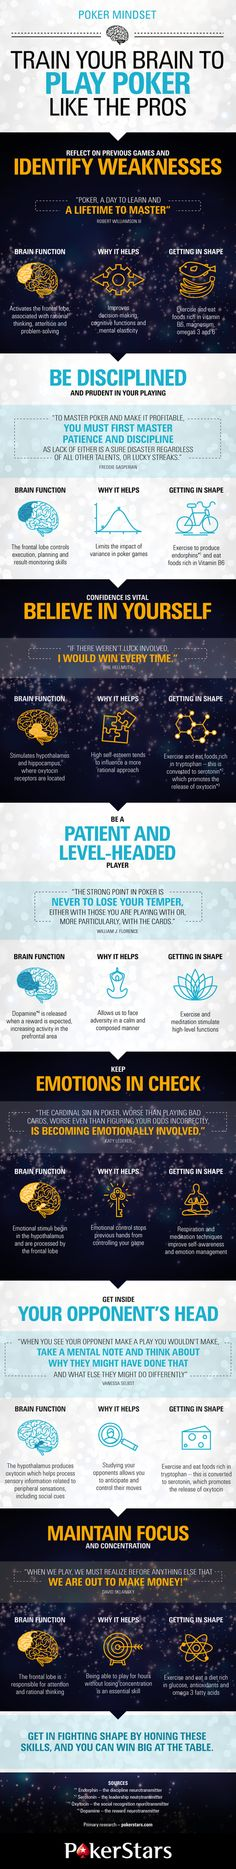 Train your brain to play poker like a pro. Check out this infographic by PokerStars that can help you train yourself to become a top poker player.